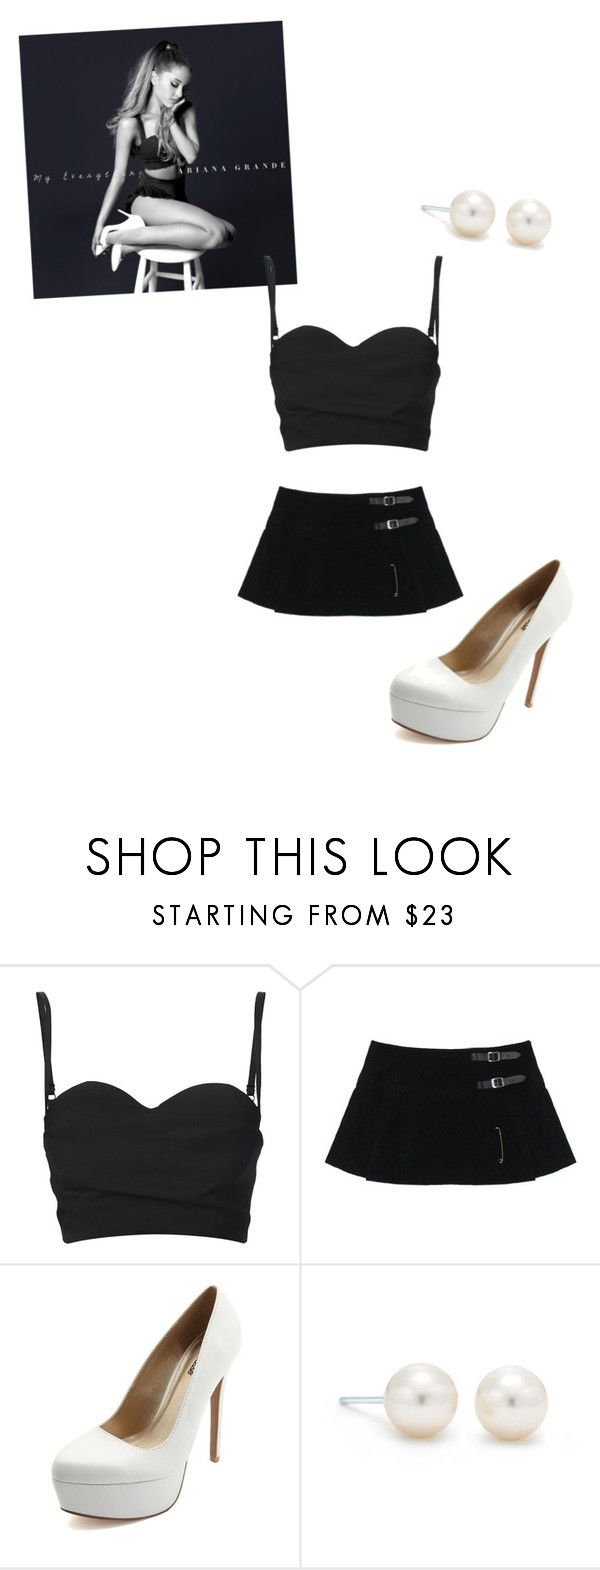 """Ariana Grande 2"" by abbybeaumont ❤ liked on Polyvore featuring Acne Studios, Charlotte Russe and Tiffany & Co."